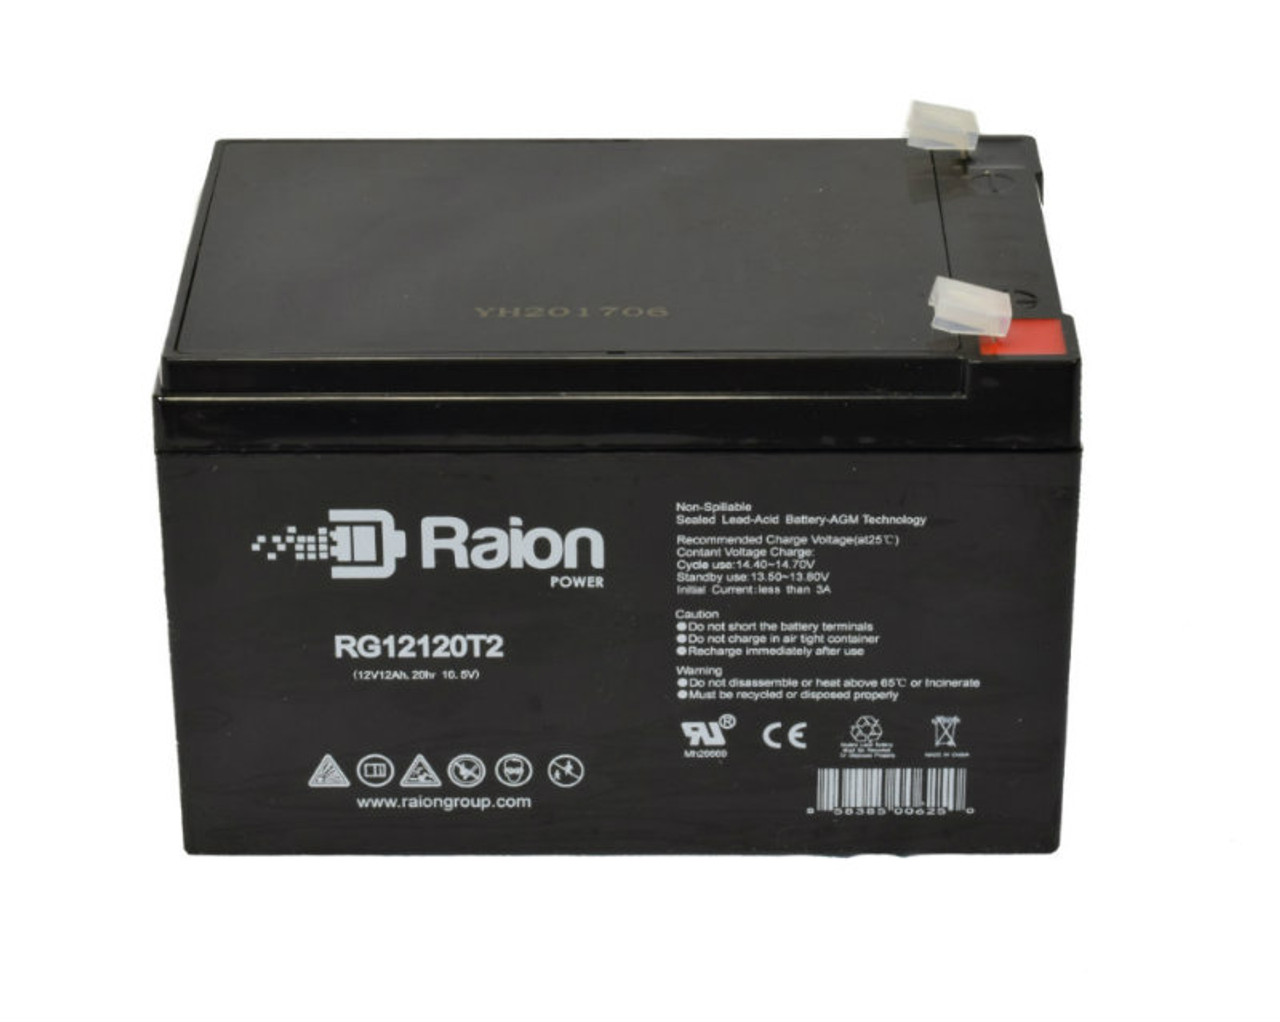 Raion Power RG12120T2 SLA Battery for Electric Mobility Ultralite 355XL Wheelchairs